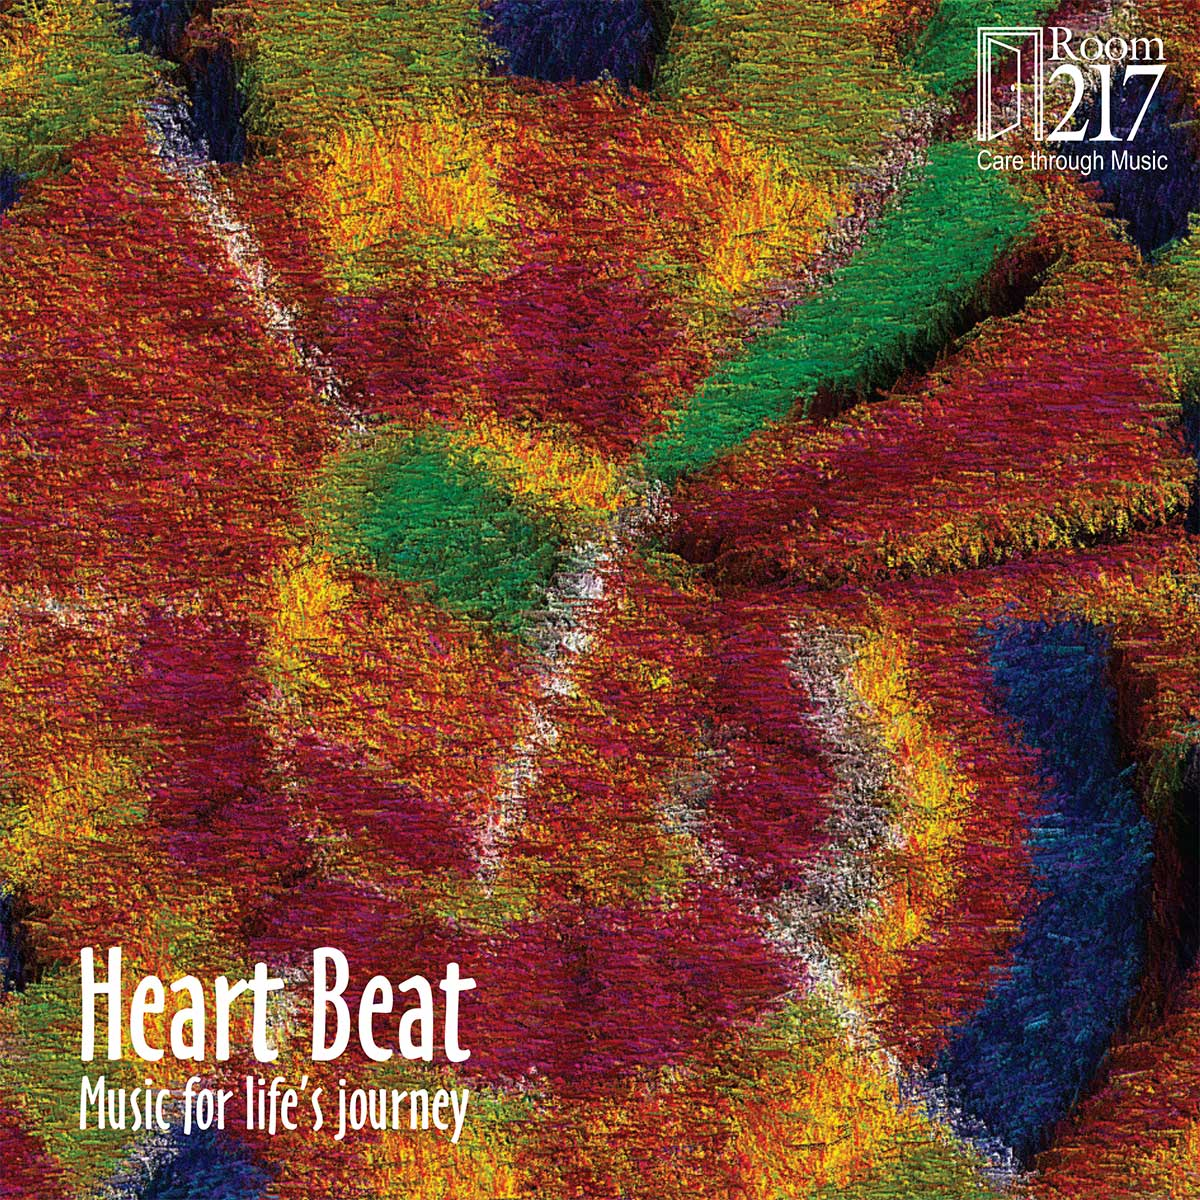 Room 217 – Heart Beat - Album art